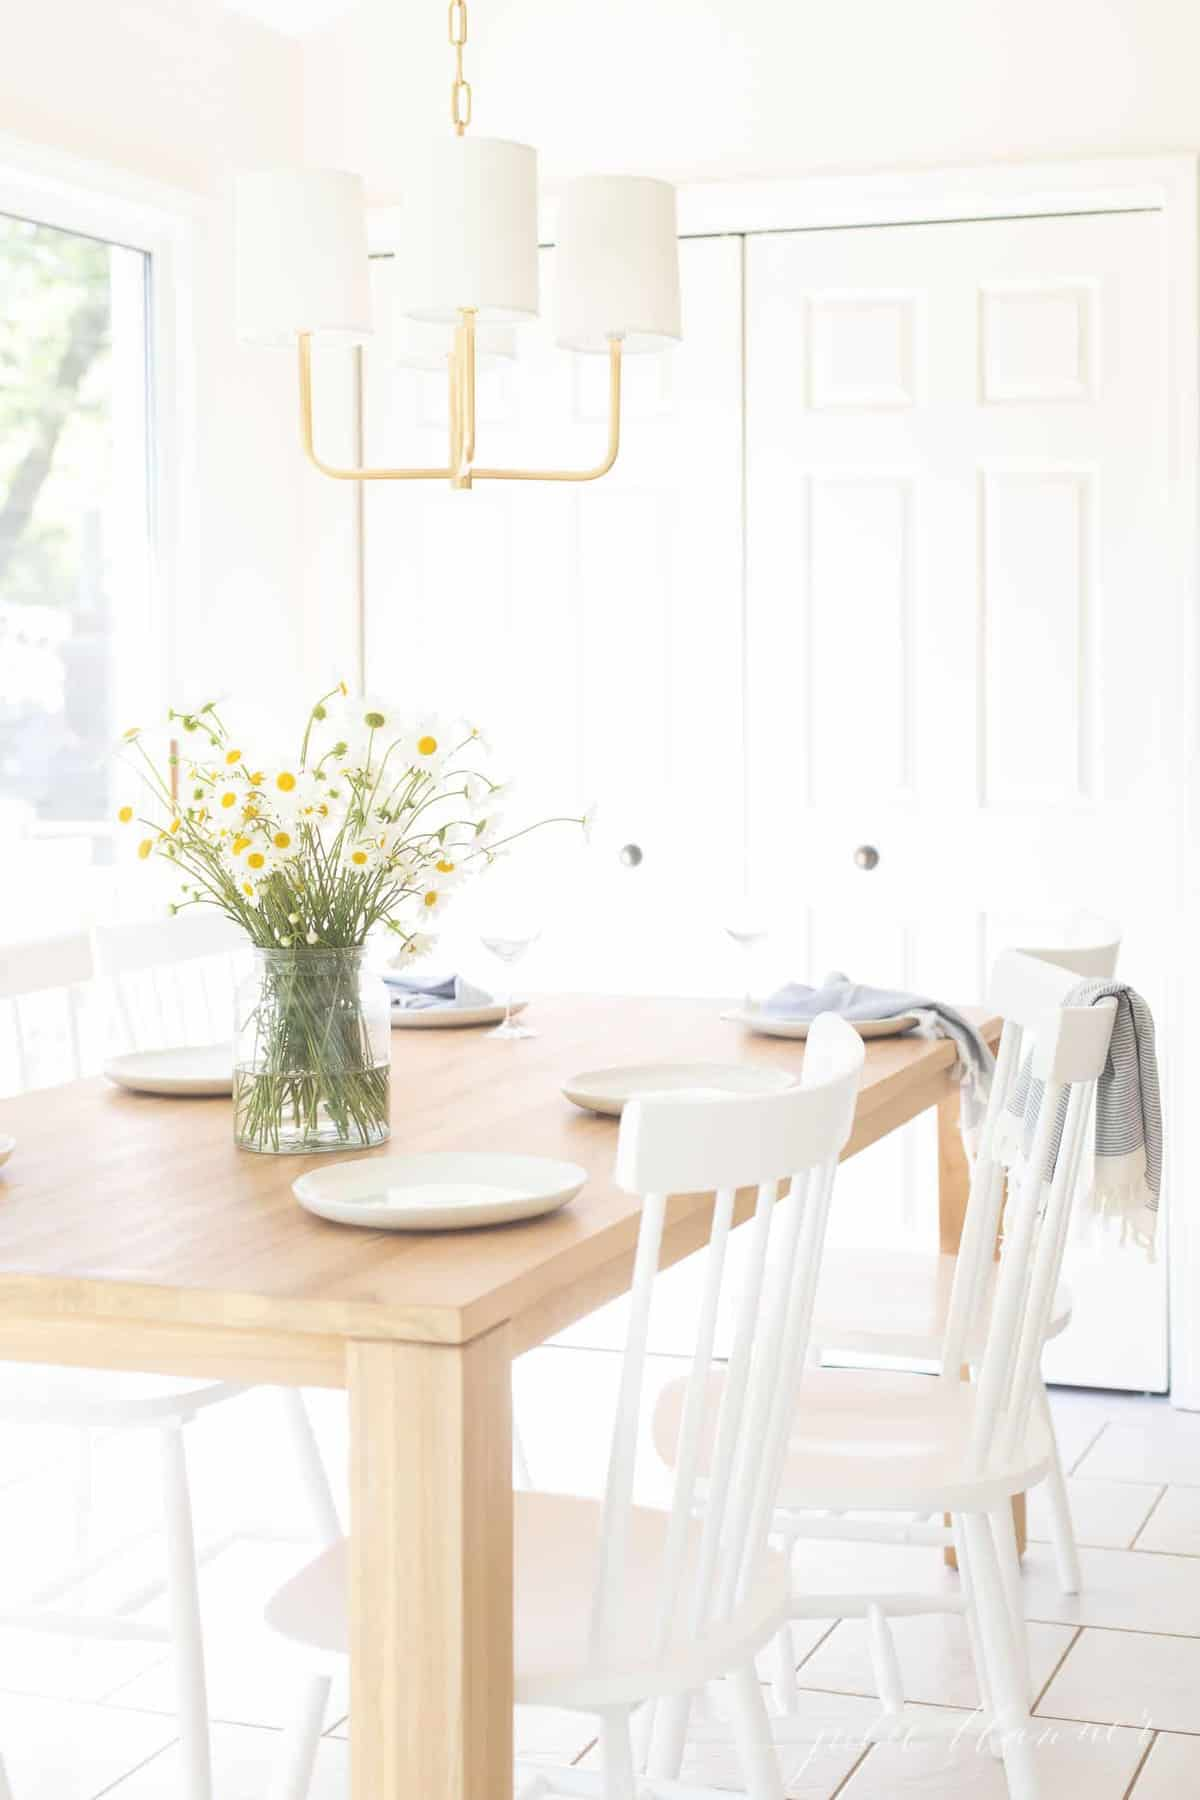 brass light over teak table with white chairs